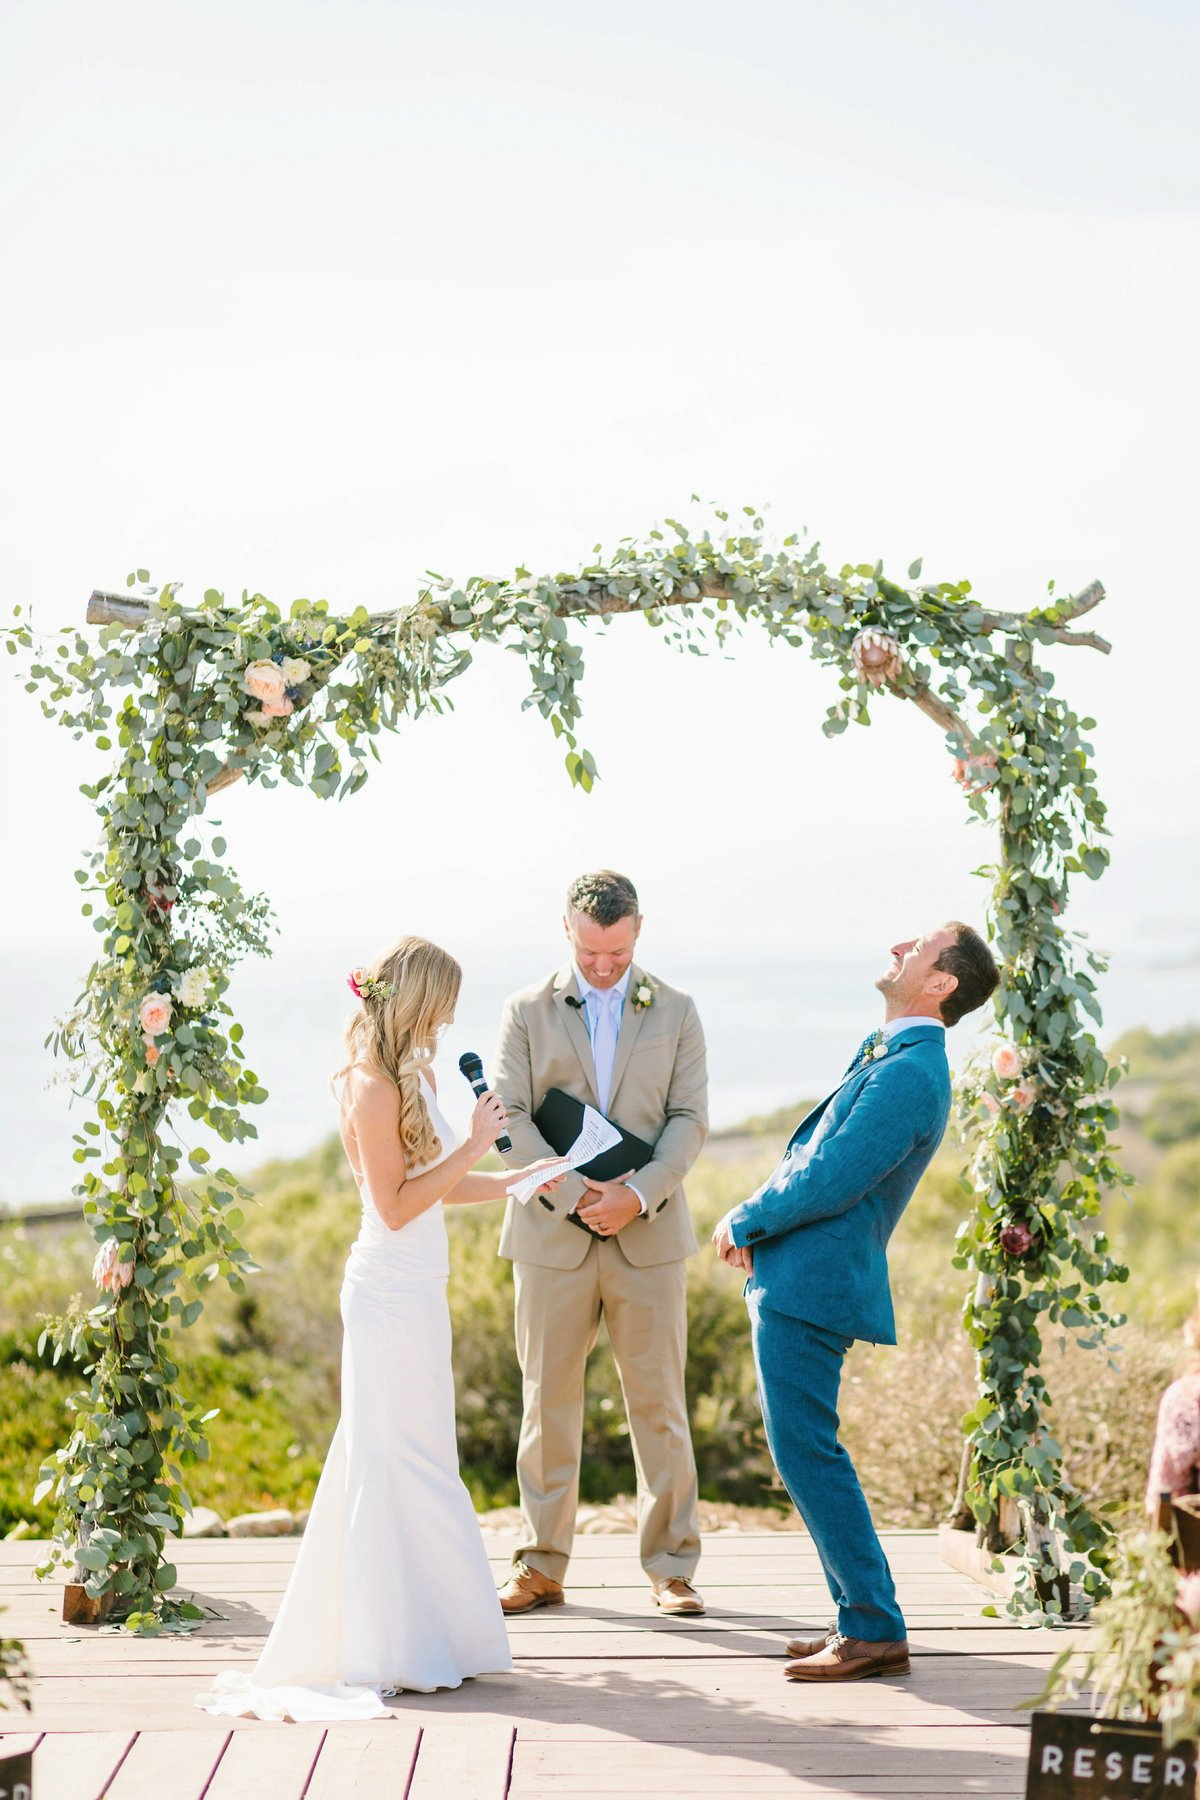 Best California Wedding Photographer-Jodee Debes Photography-102